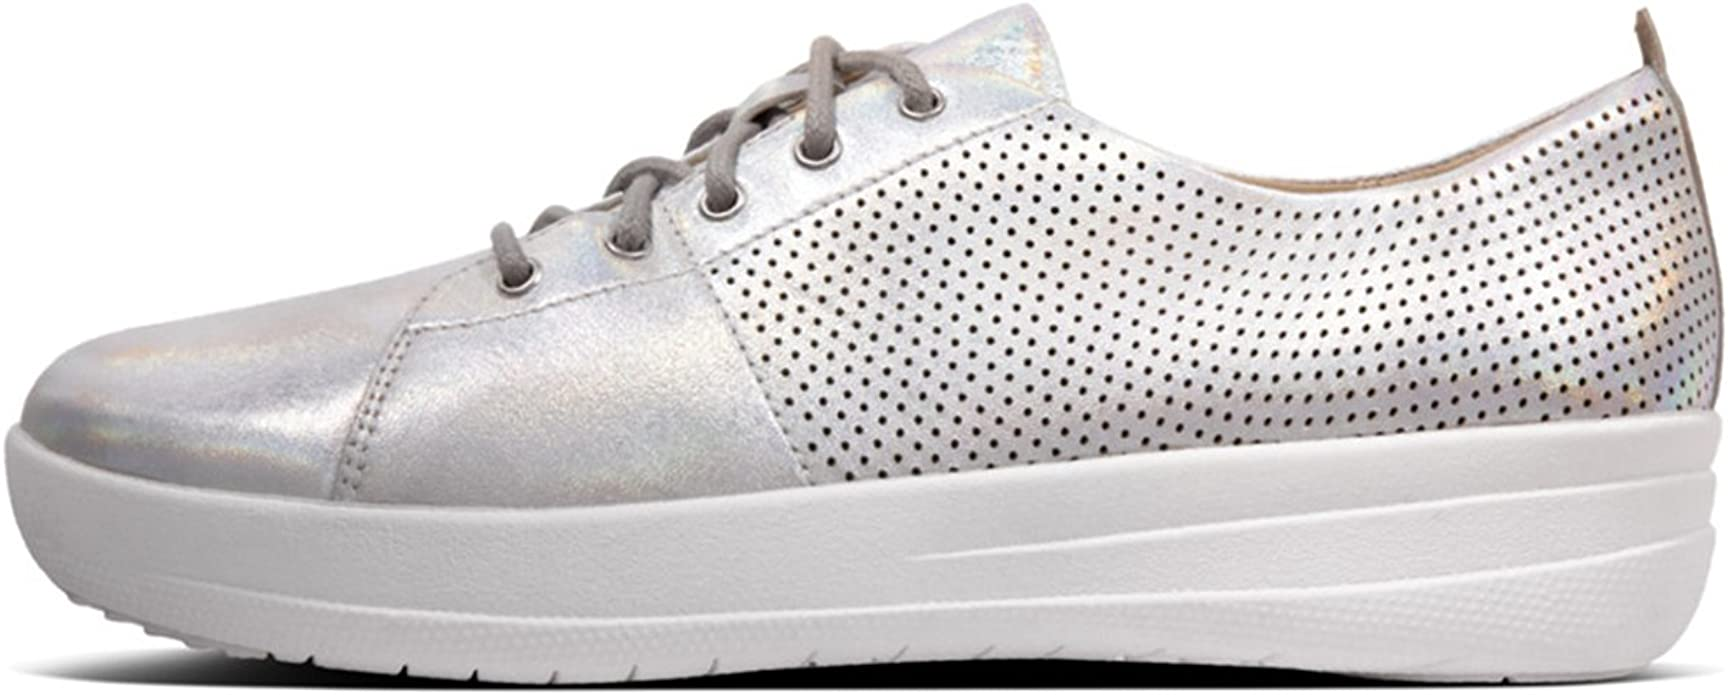 FitFlop F-Sporty TM II Lace Up Perf Snea